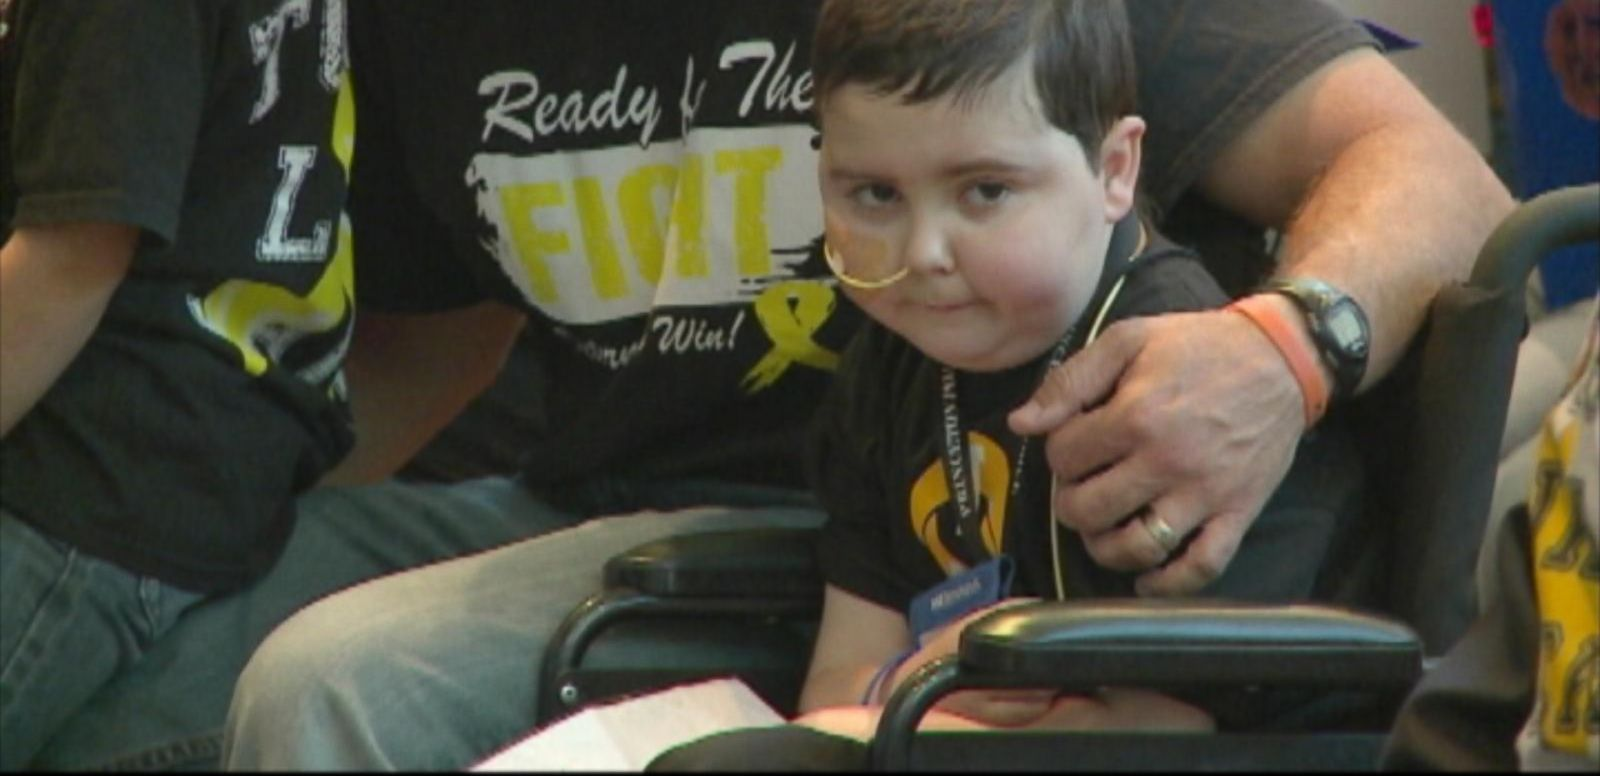 VIDEO: Dallas Police Department Swears in Cancer-Stricken Boy